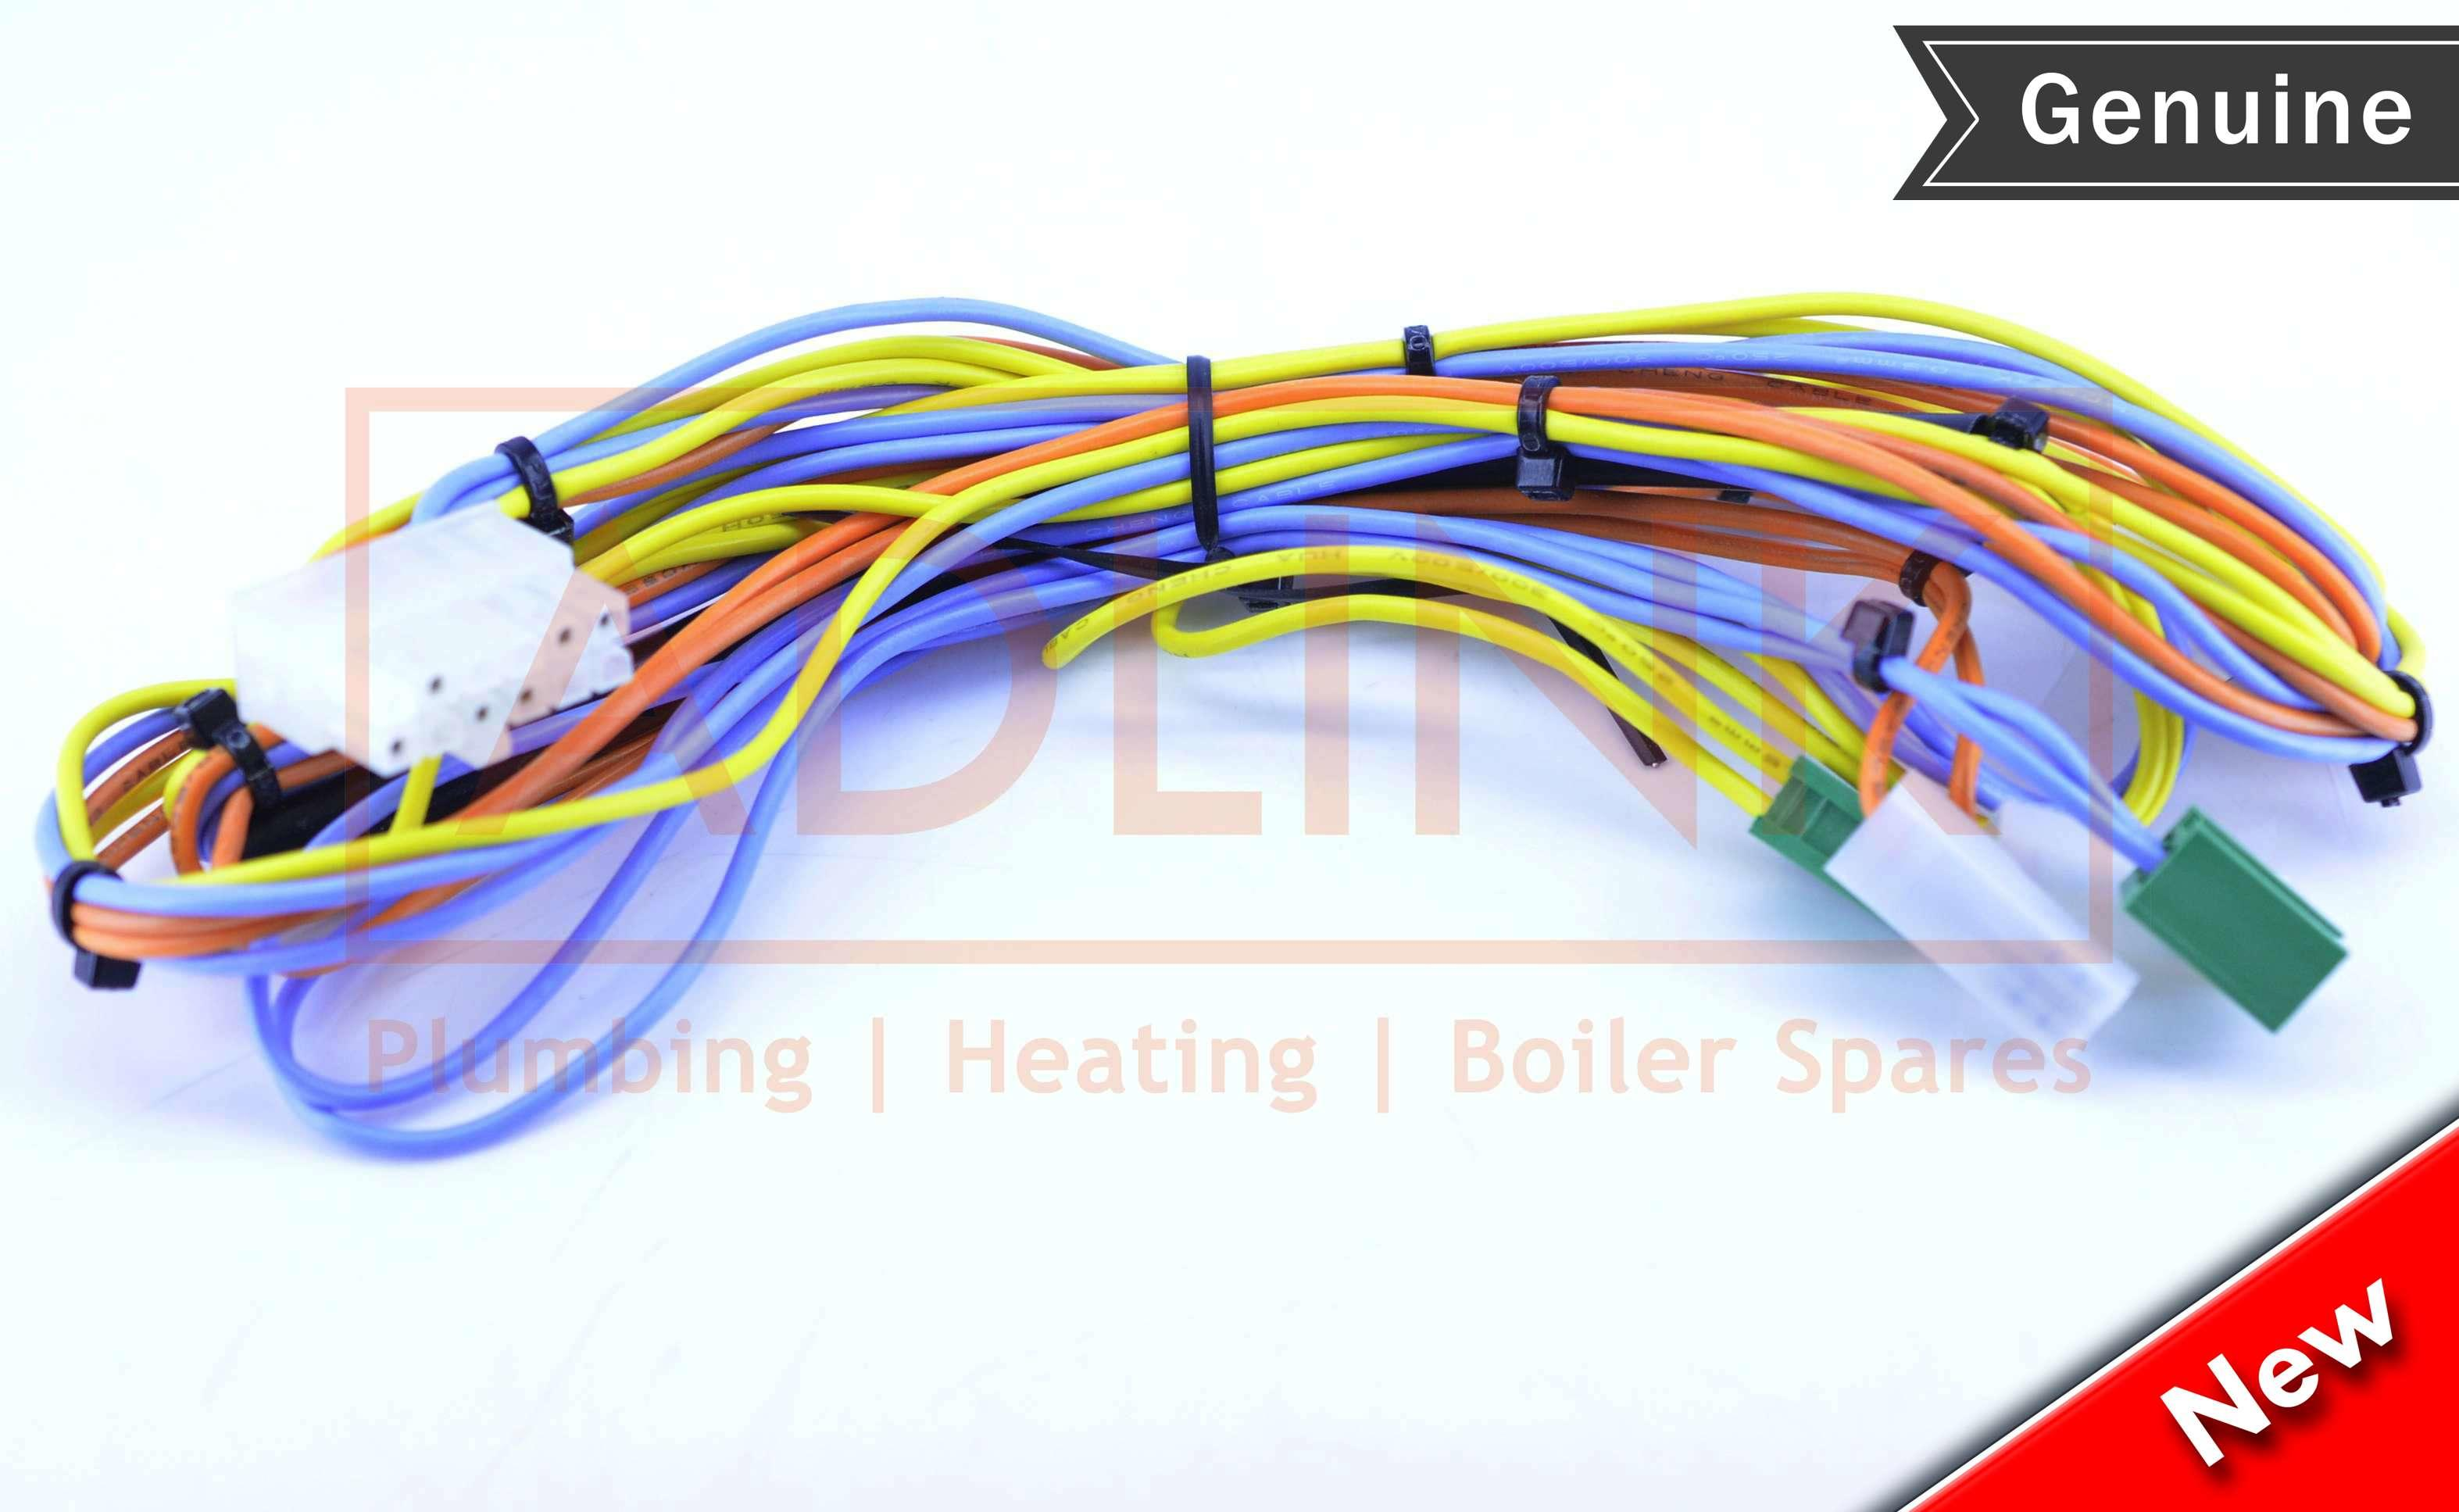 Potterton Suprima 30 40 50 60 70 80 He Low Voltage Wire Harness Electrical Wiring Cable 5112335